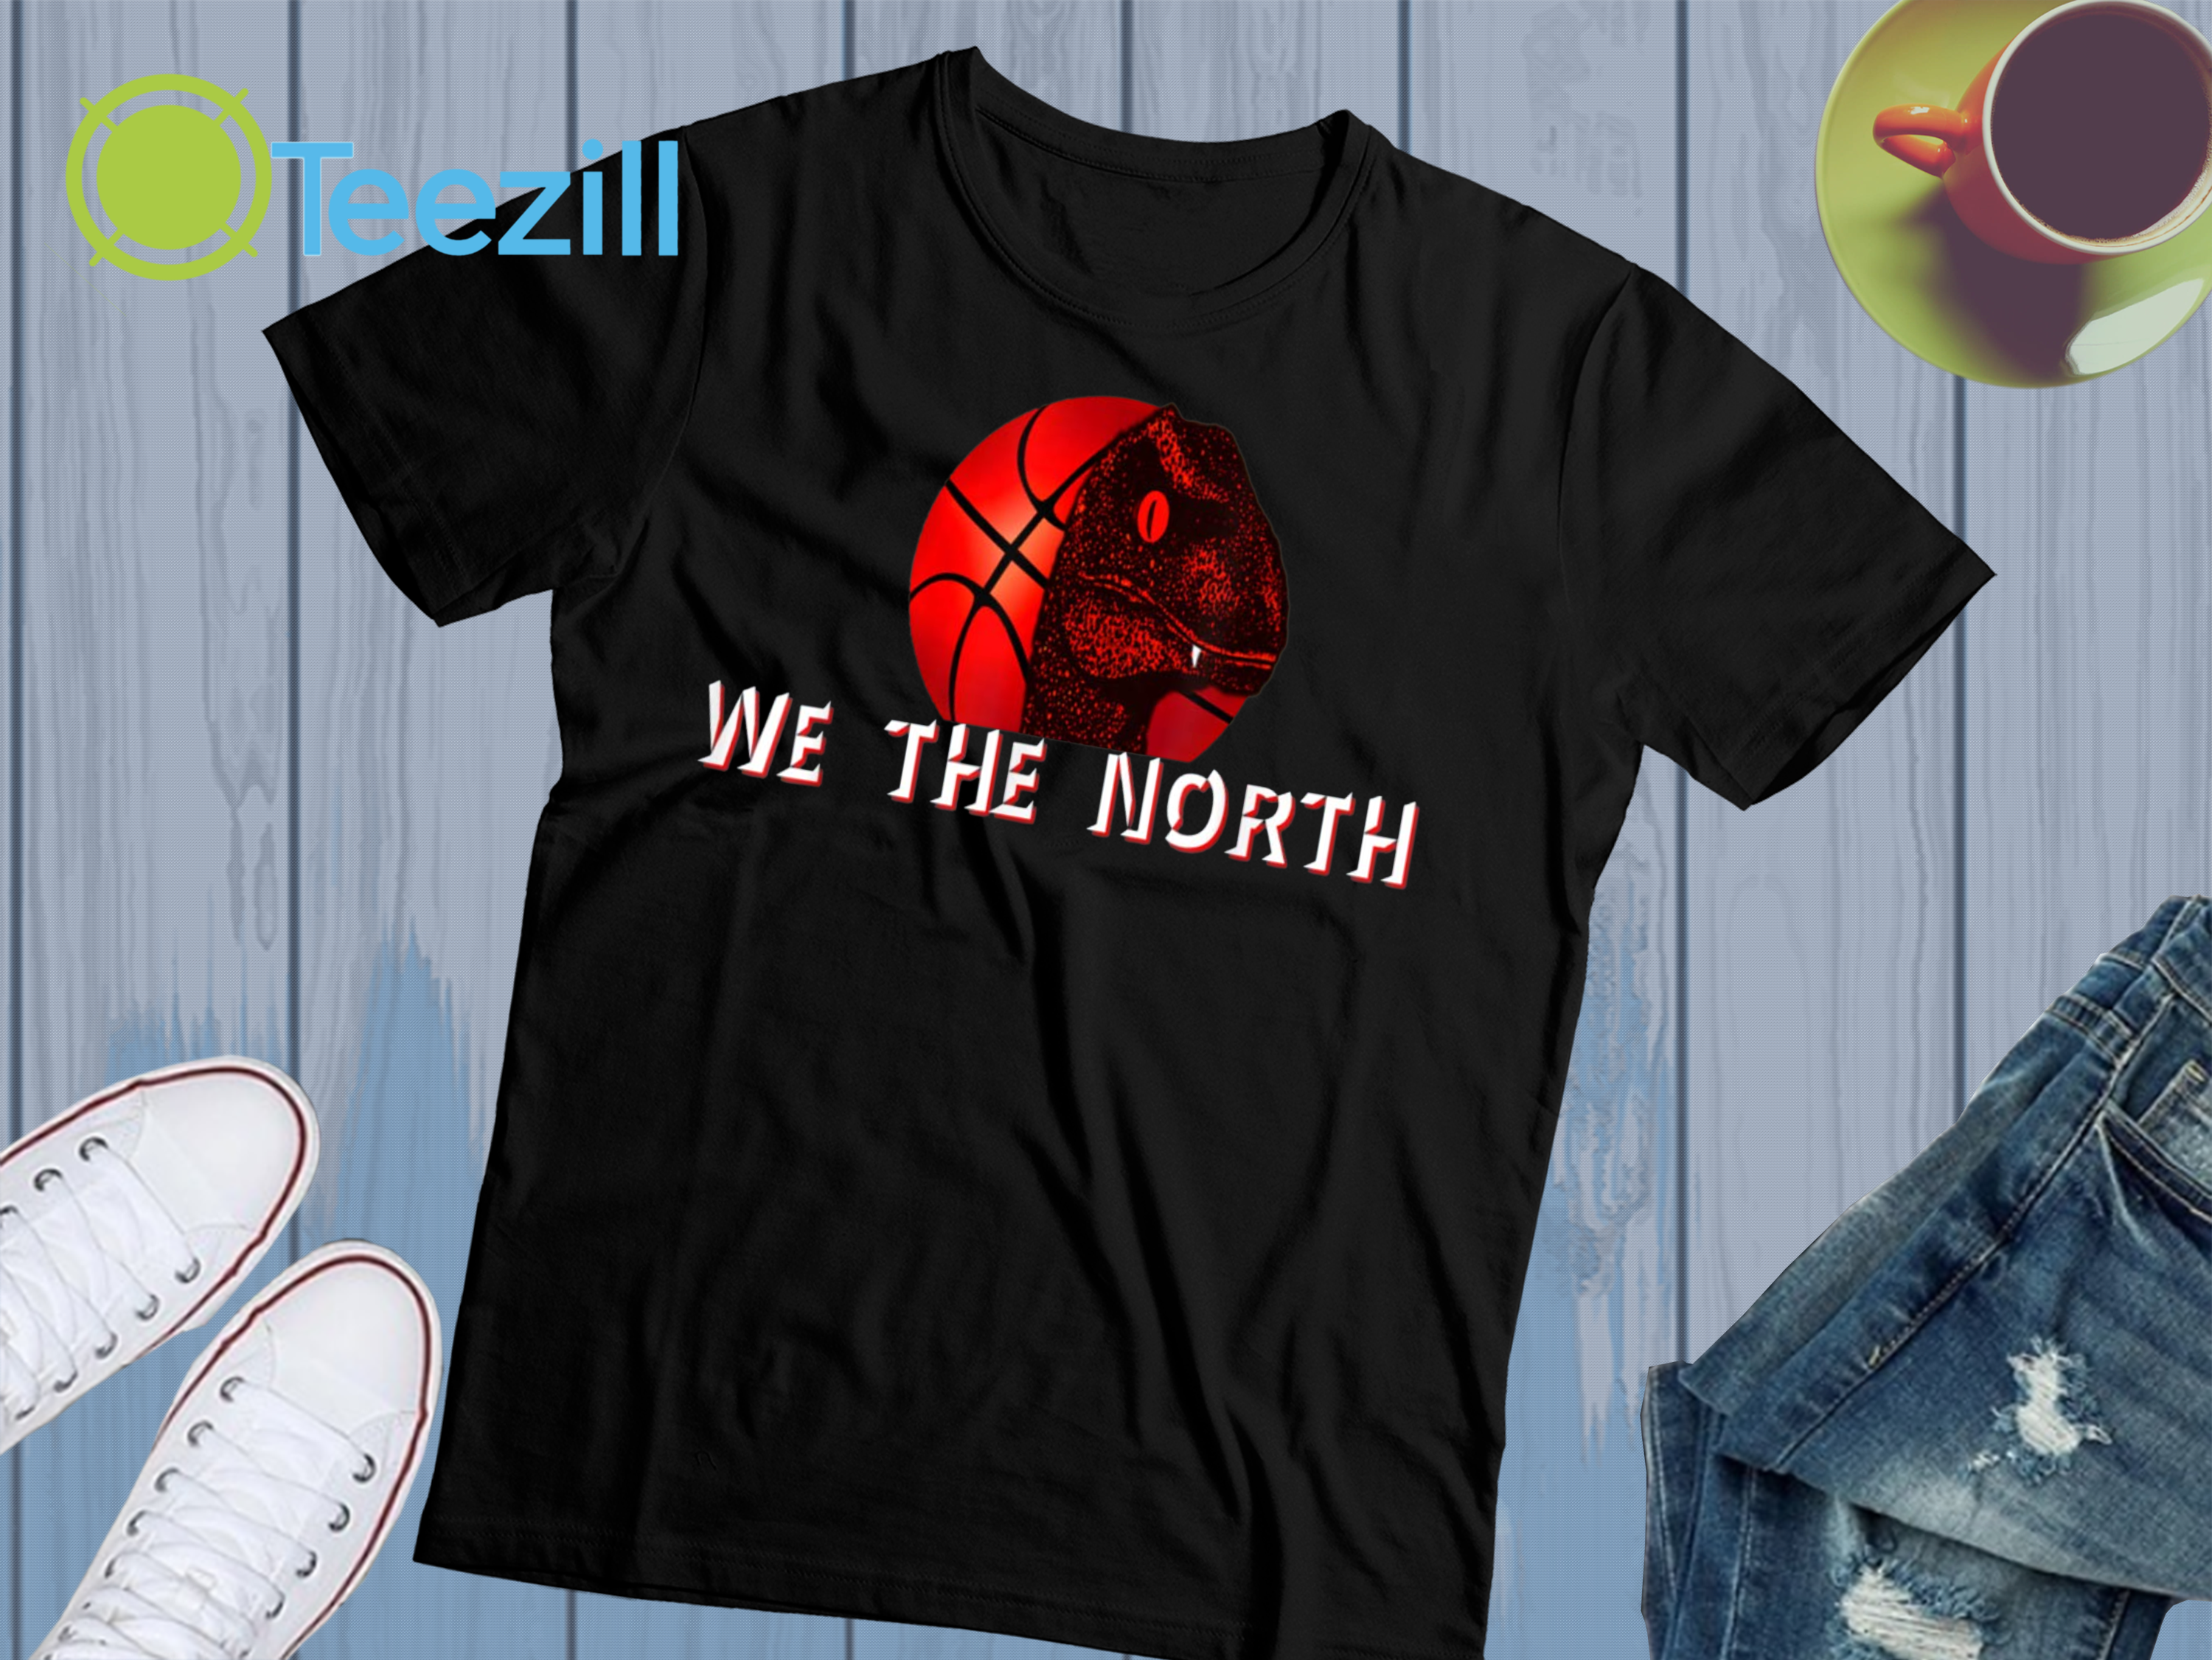 af125a316f2 WeTheNorth# We The North Toronto Raptors Basketball T-Shirts